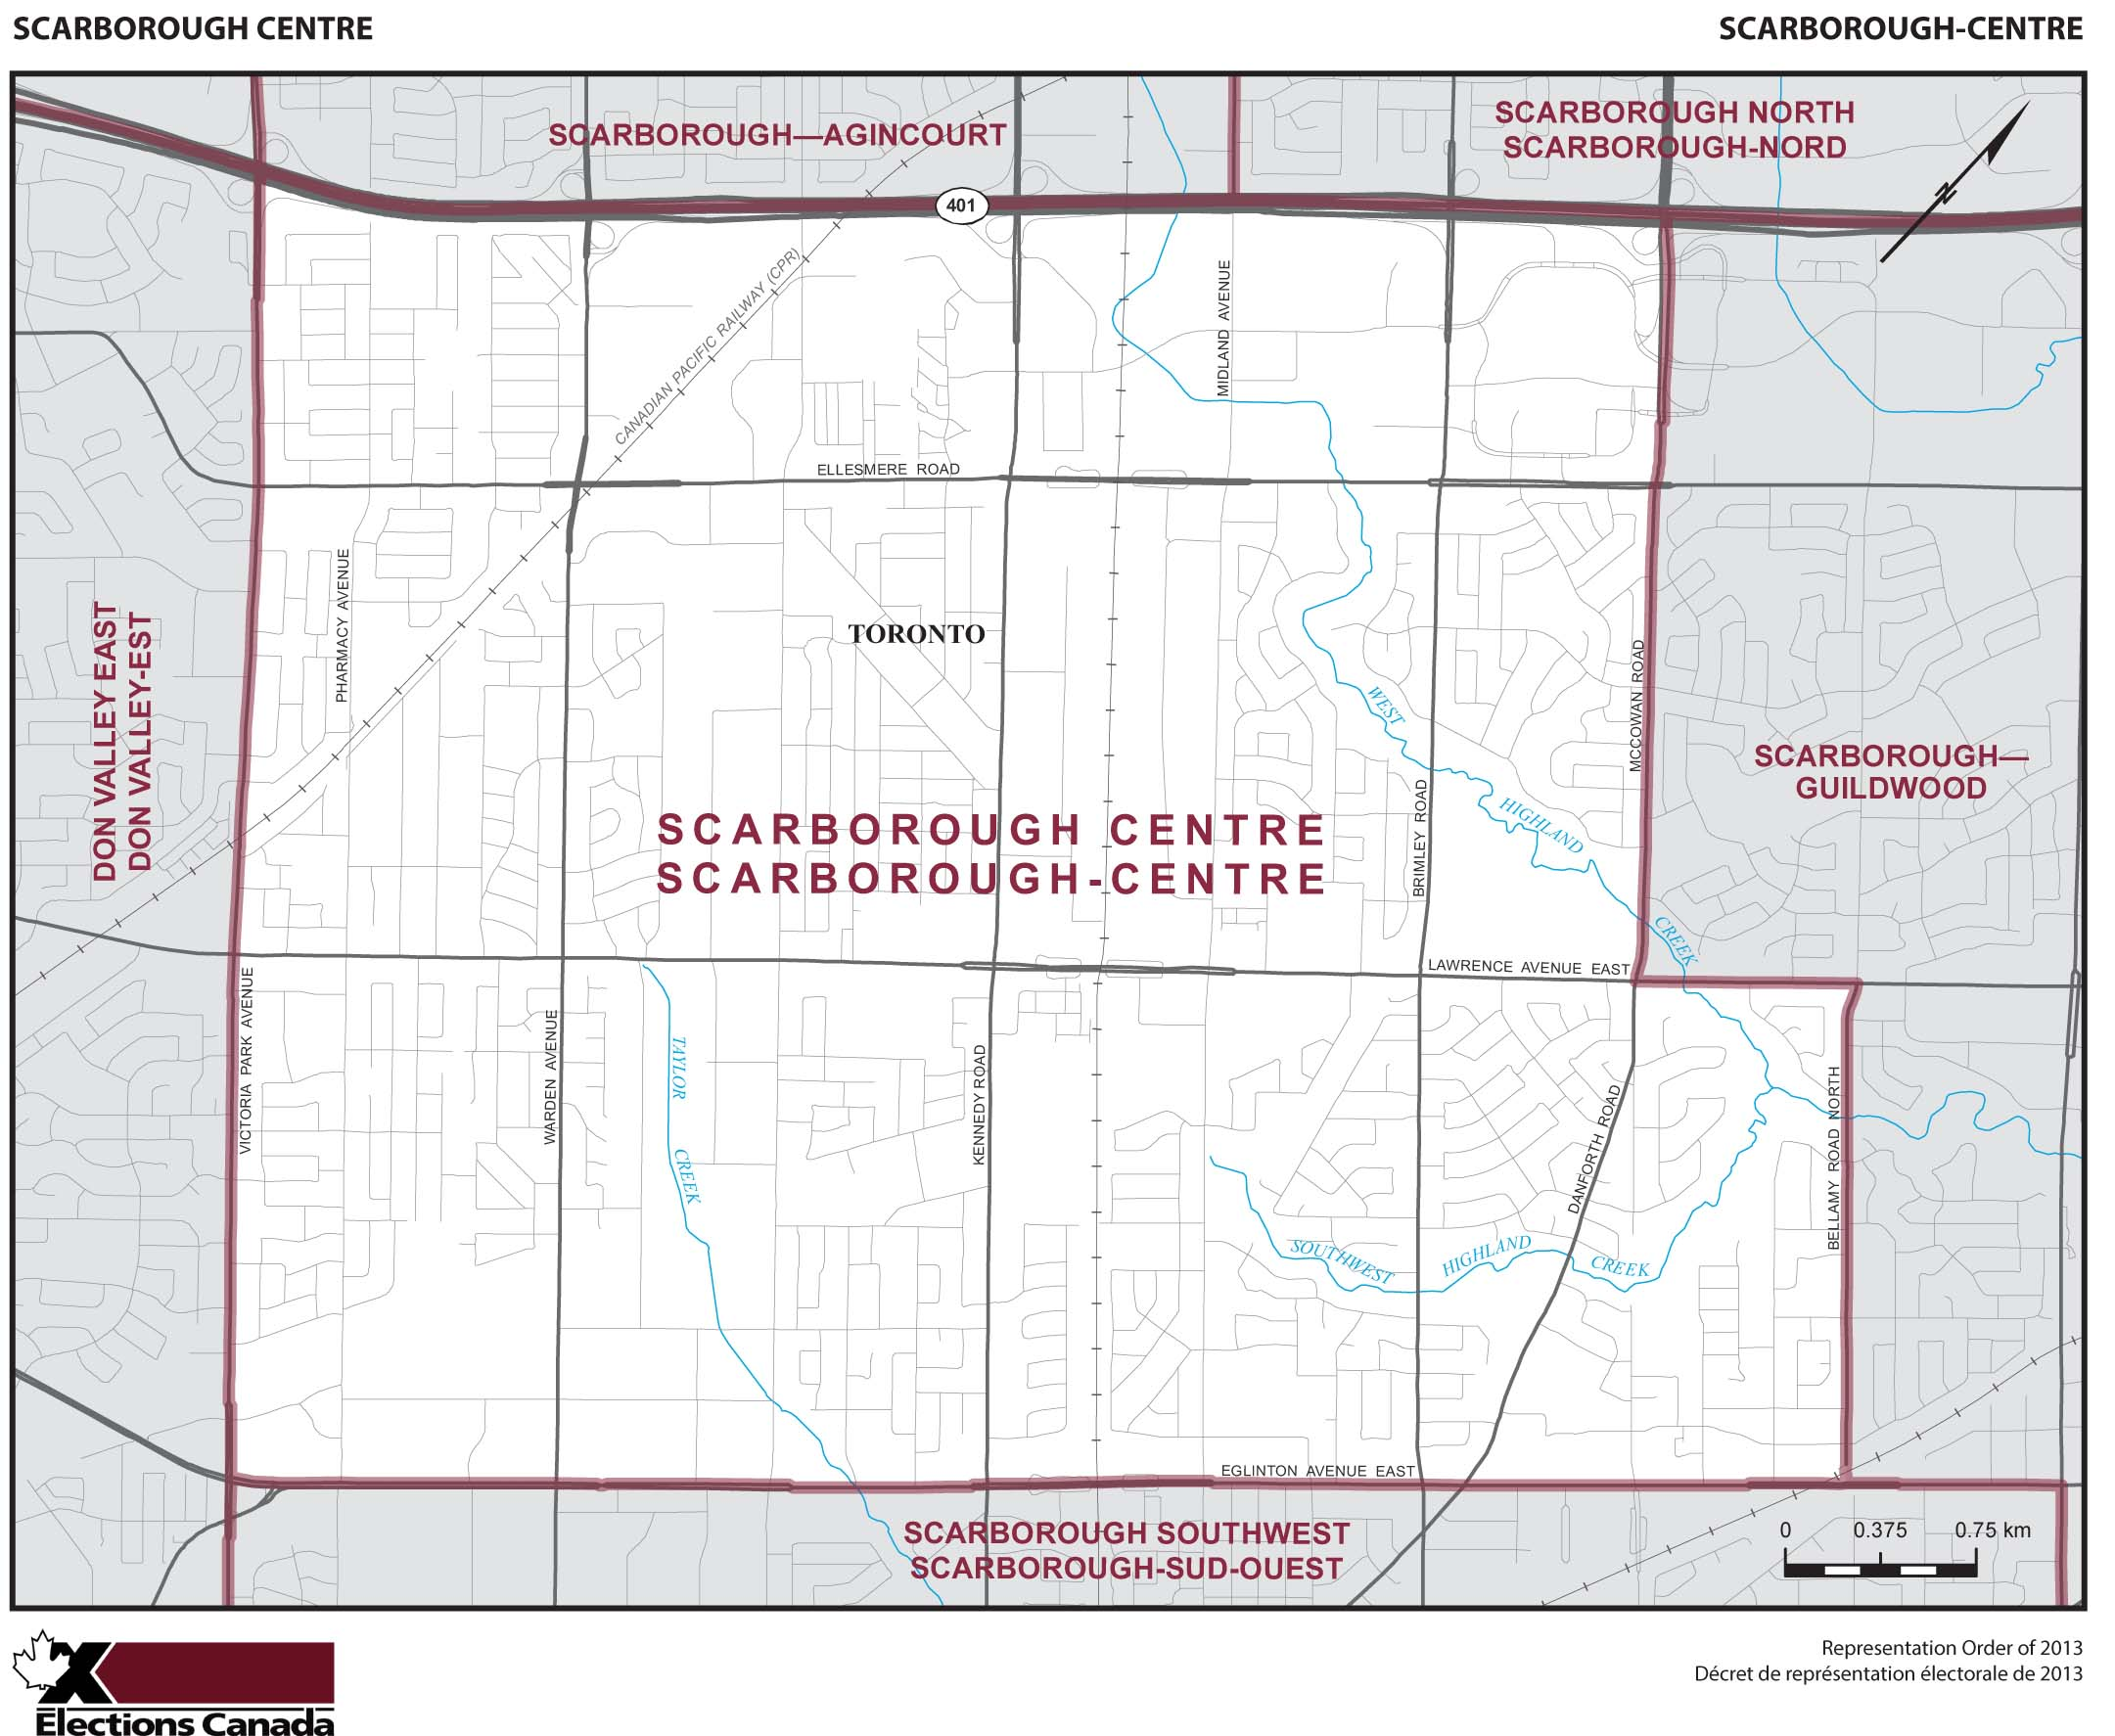 Map: Scarborough Centre, Federal electoral district, 2013 Representation Order (in white), Ontario